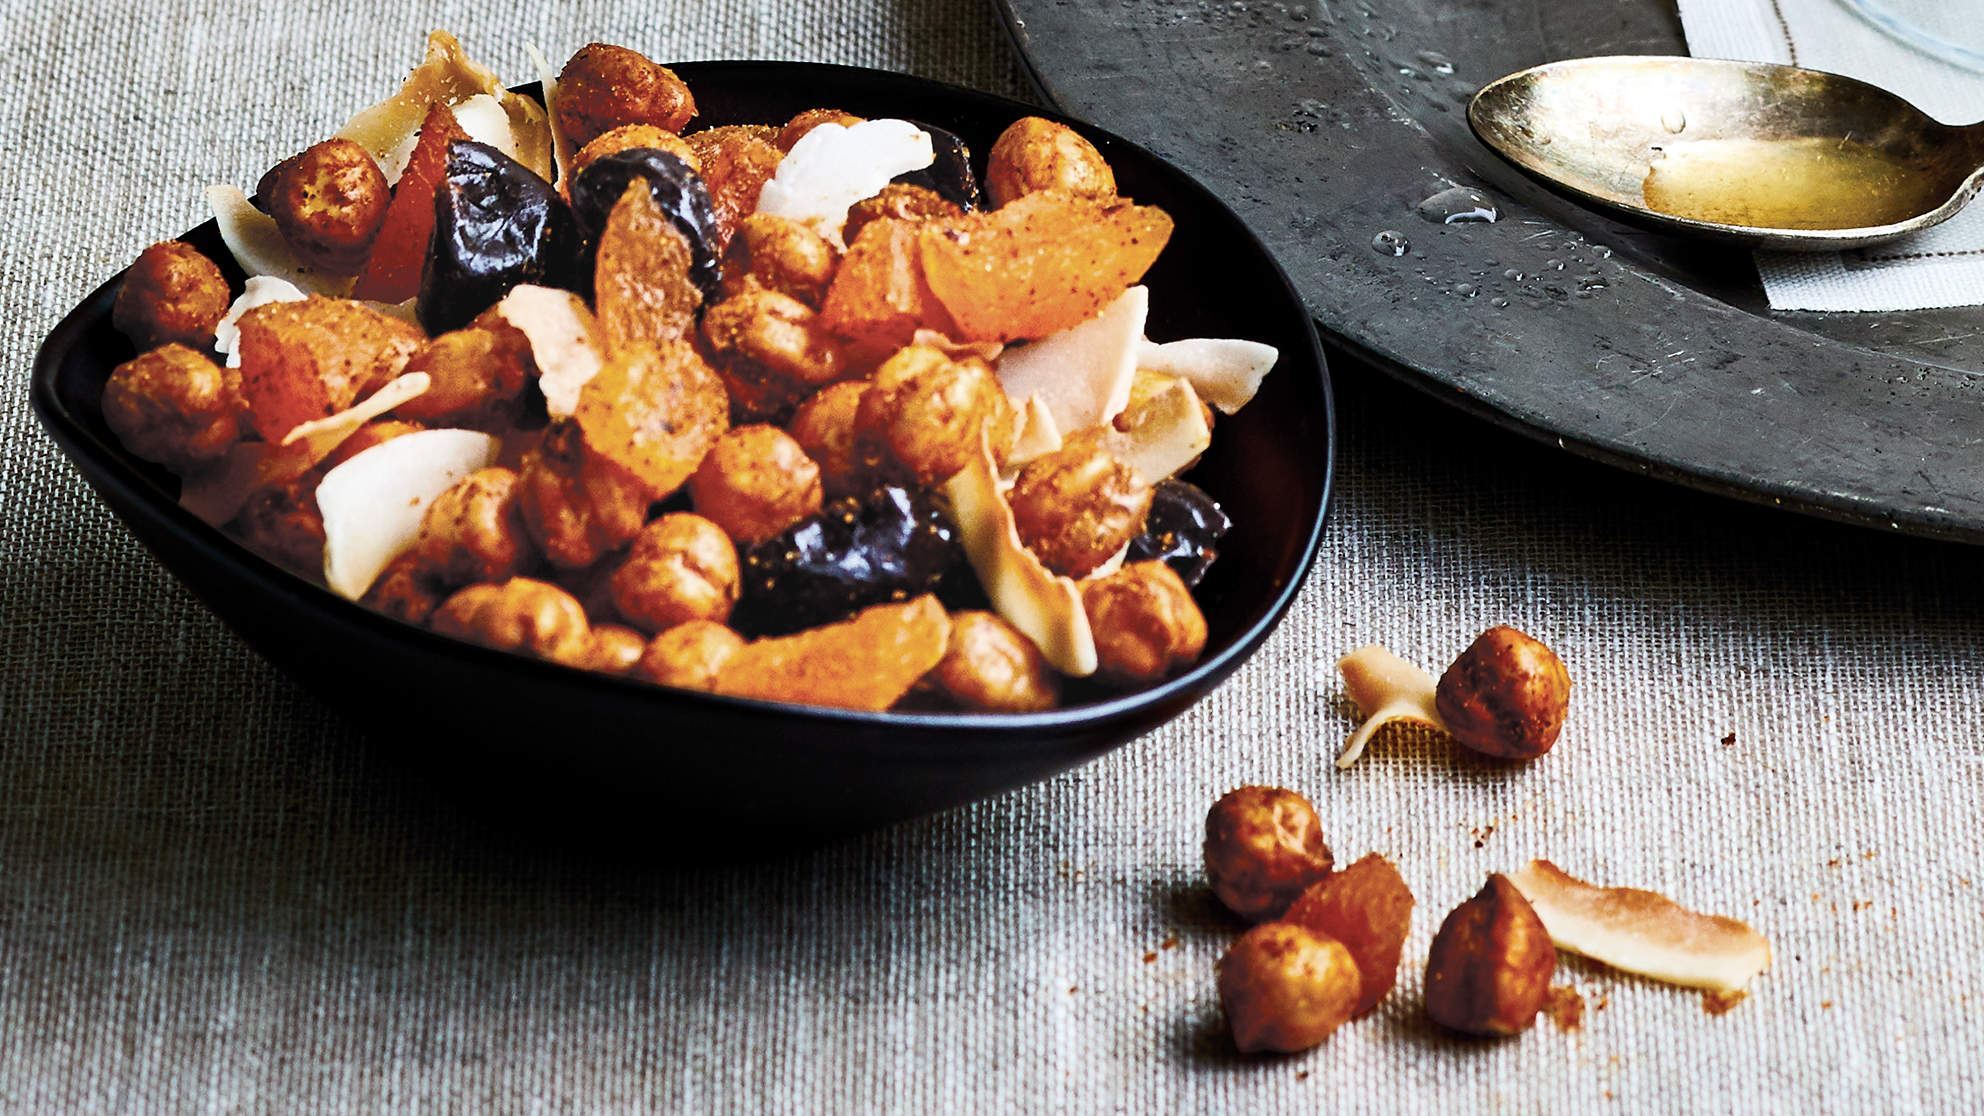 Crispy Curried Chickpea Snack Mix